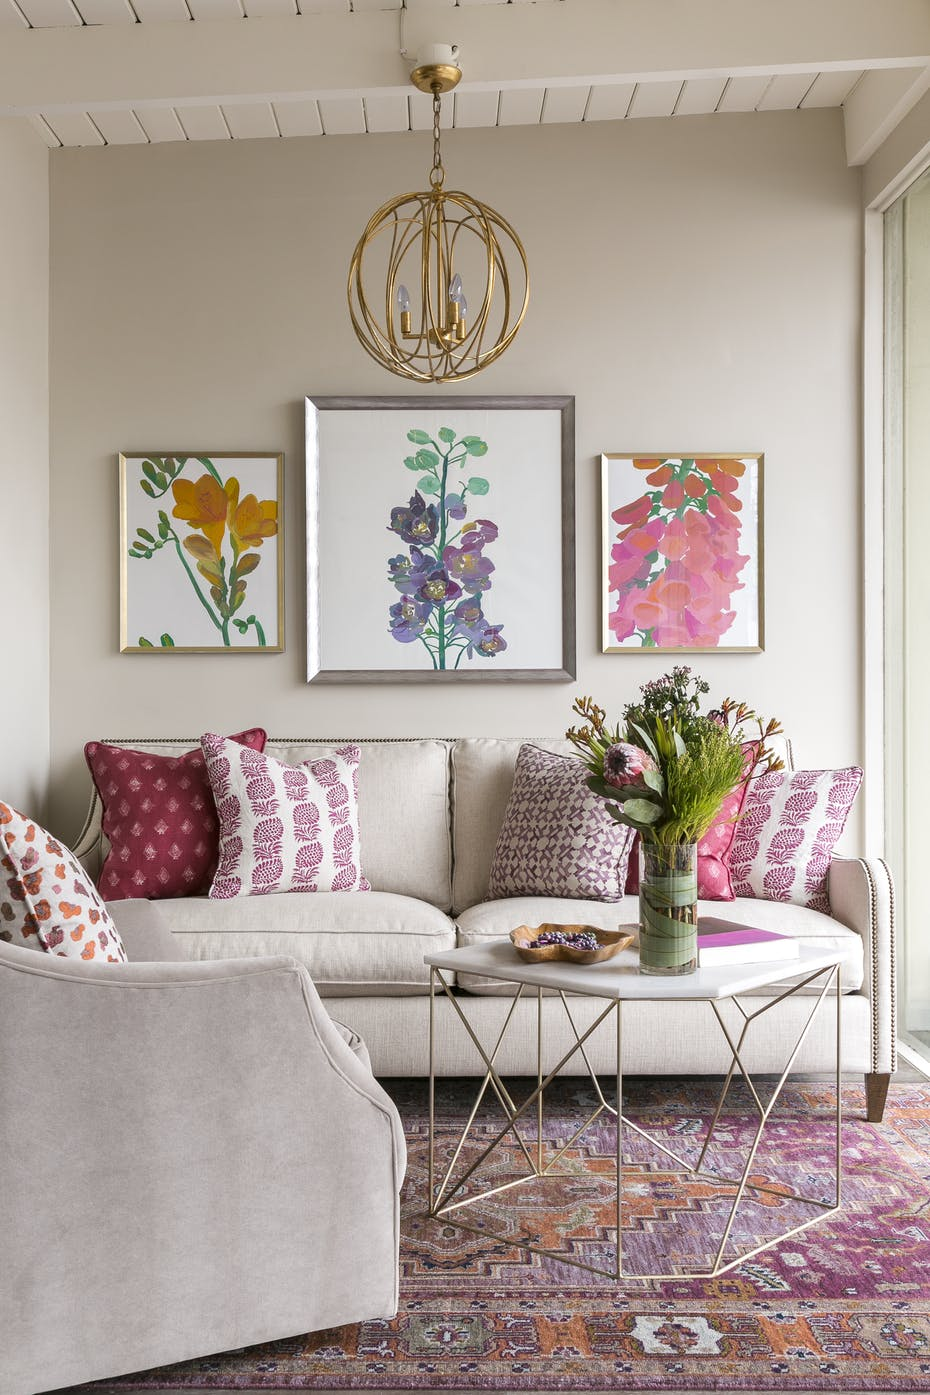 Summer decorating ideas by dering hall design for Room decor ideas summer